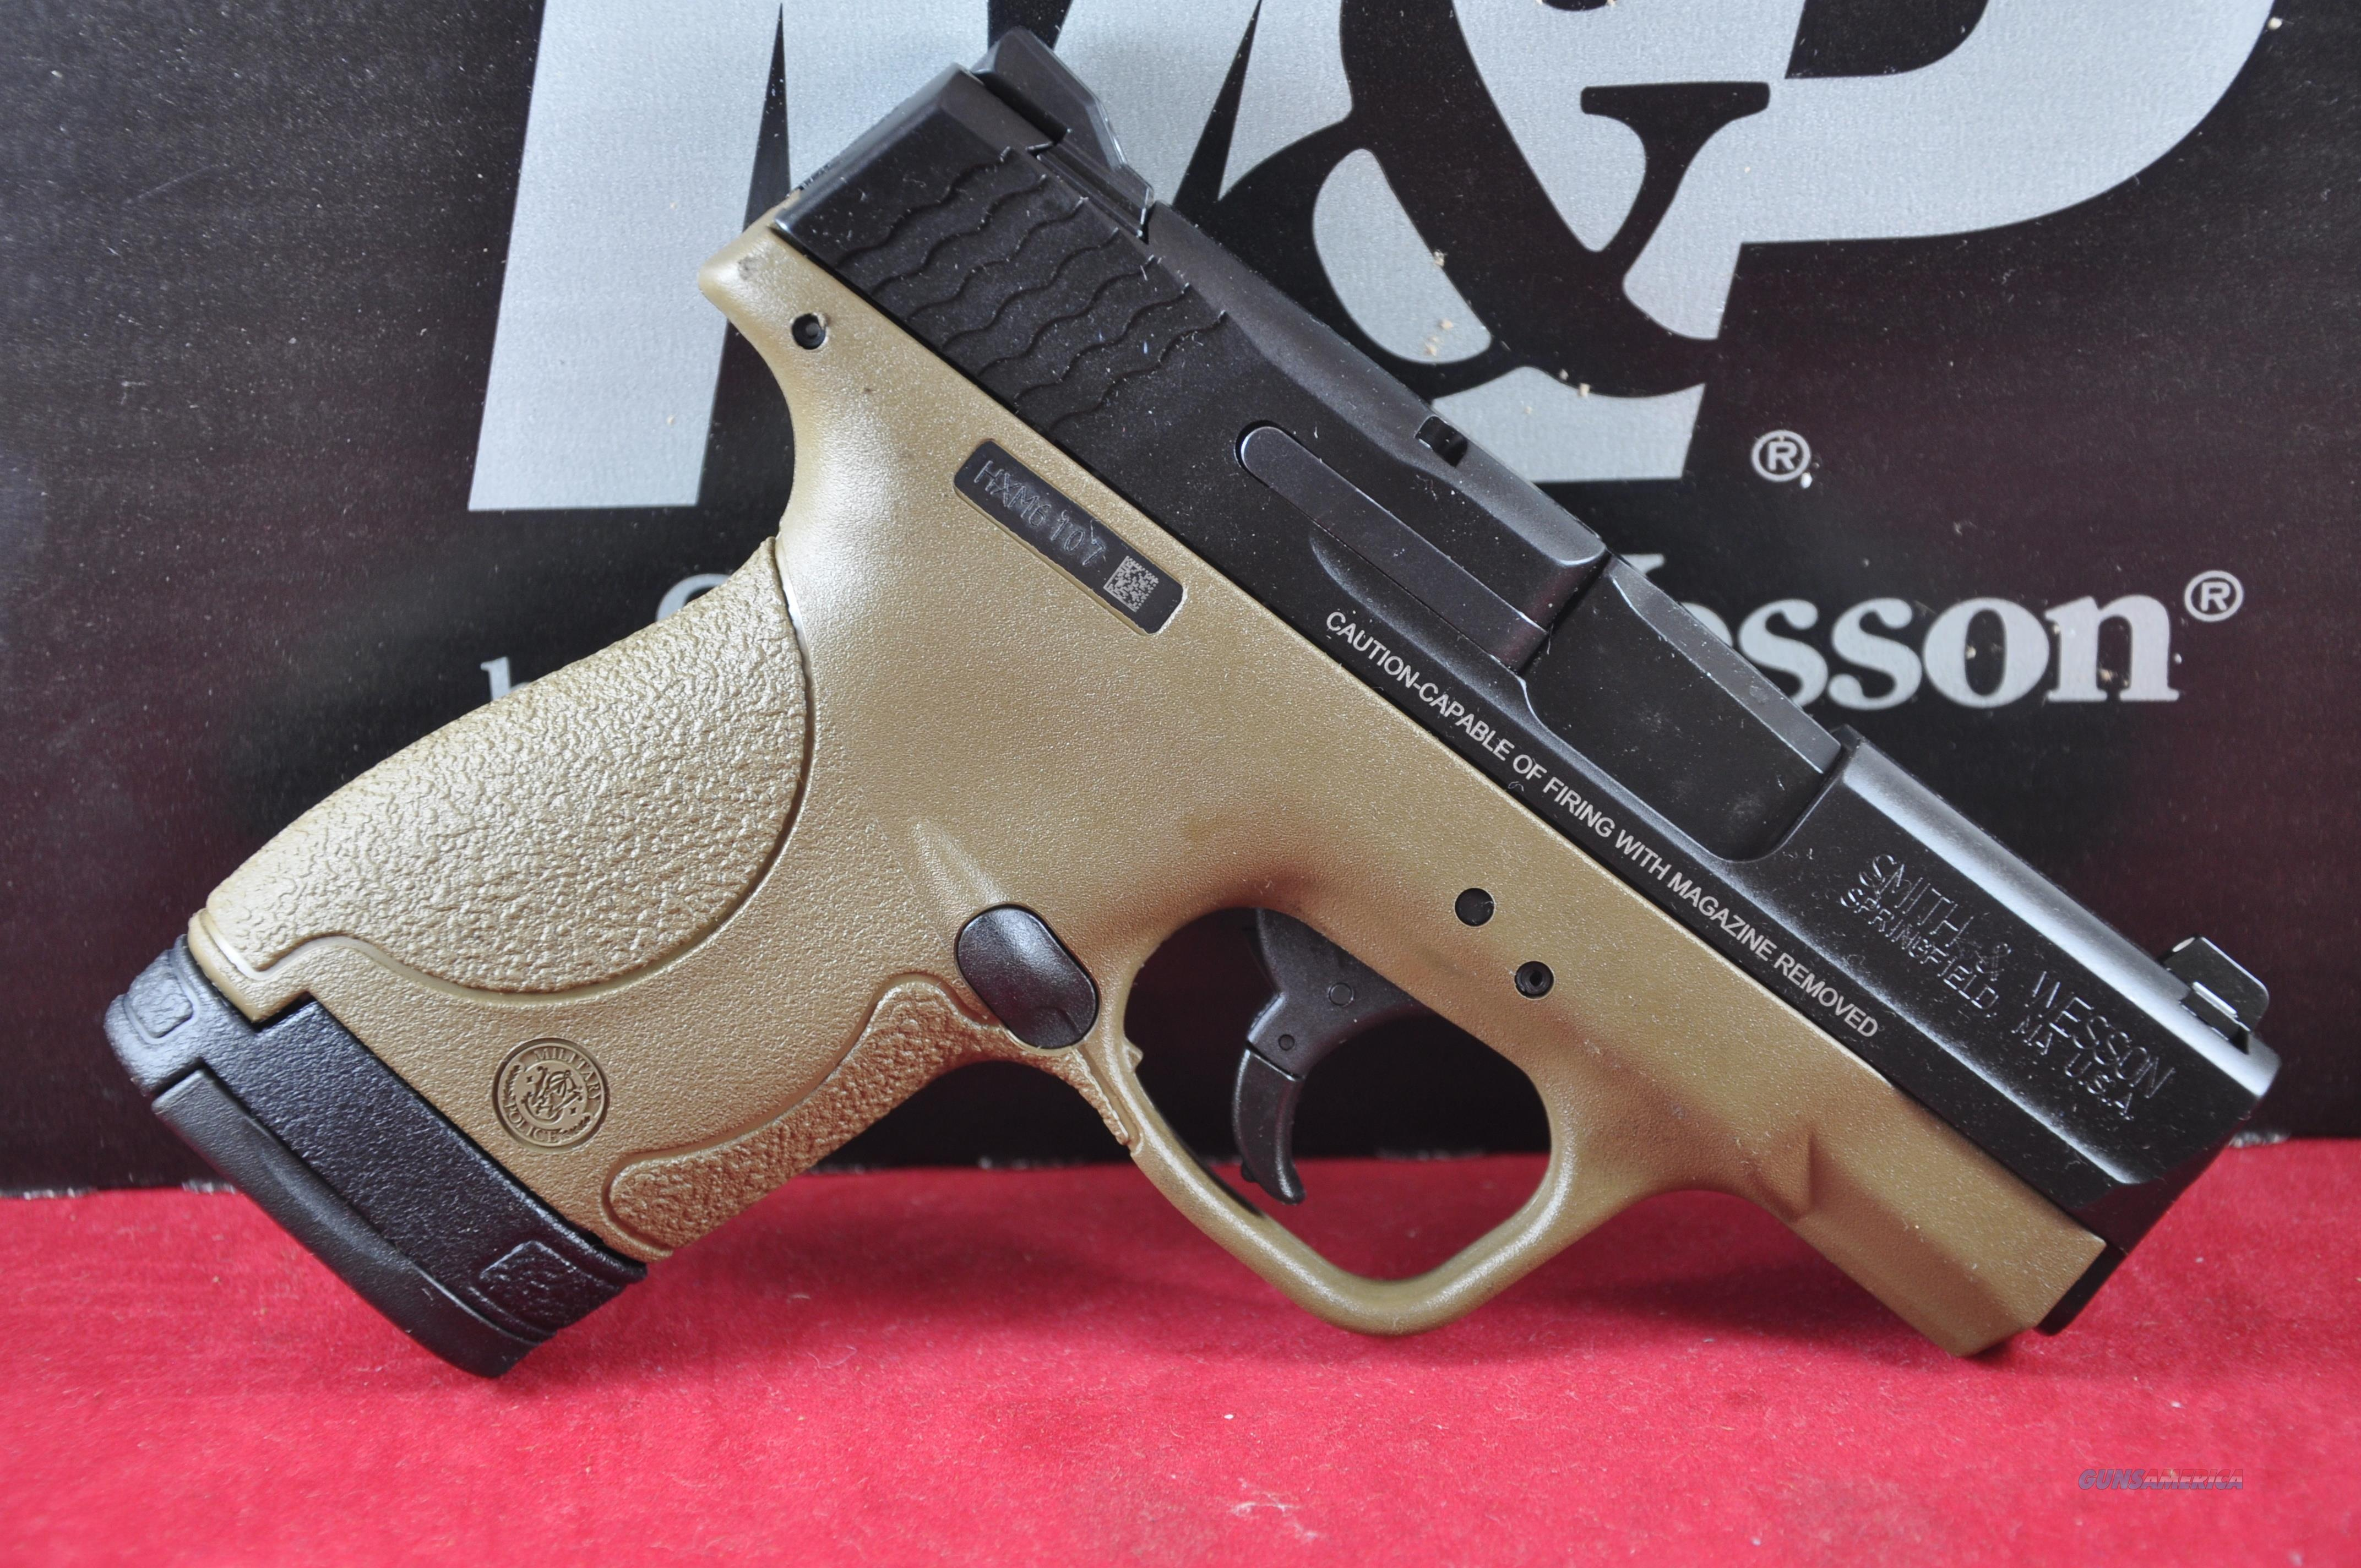 "S&W M&P9 Shield 9mm Flat Dark Earth FDE 3.1"" New Layaway $75 Mail-in Rebate 10303  Guns > Pistols > Smith & Wesson Pistols - Autos > Shield"